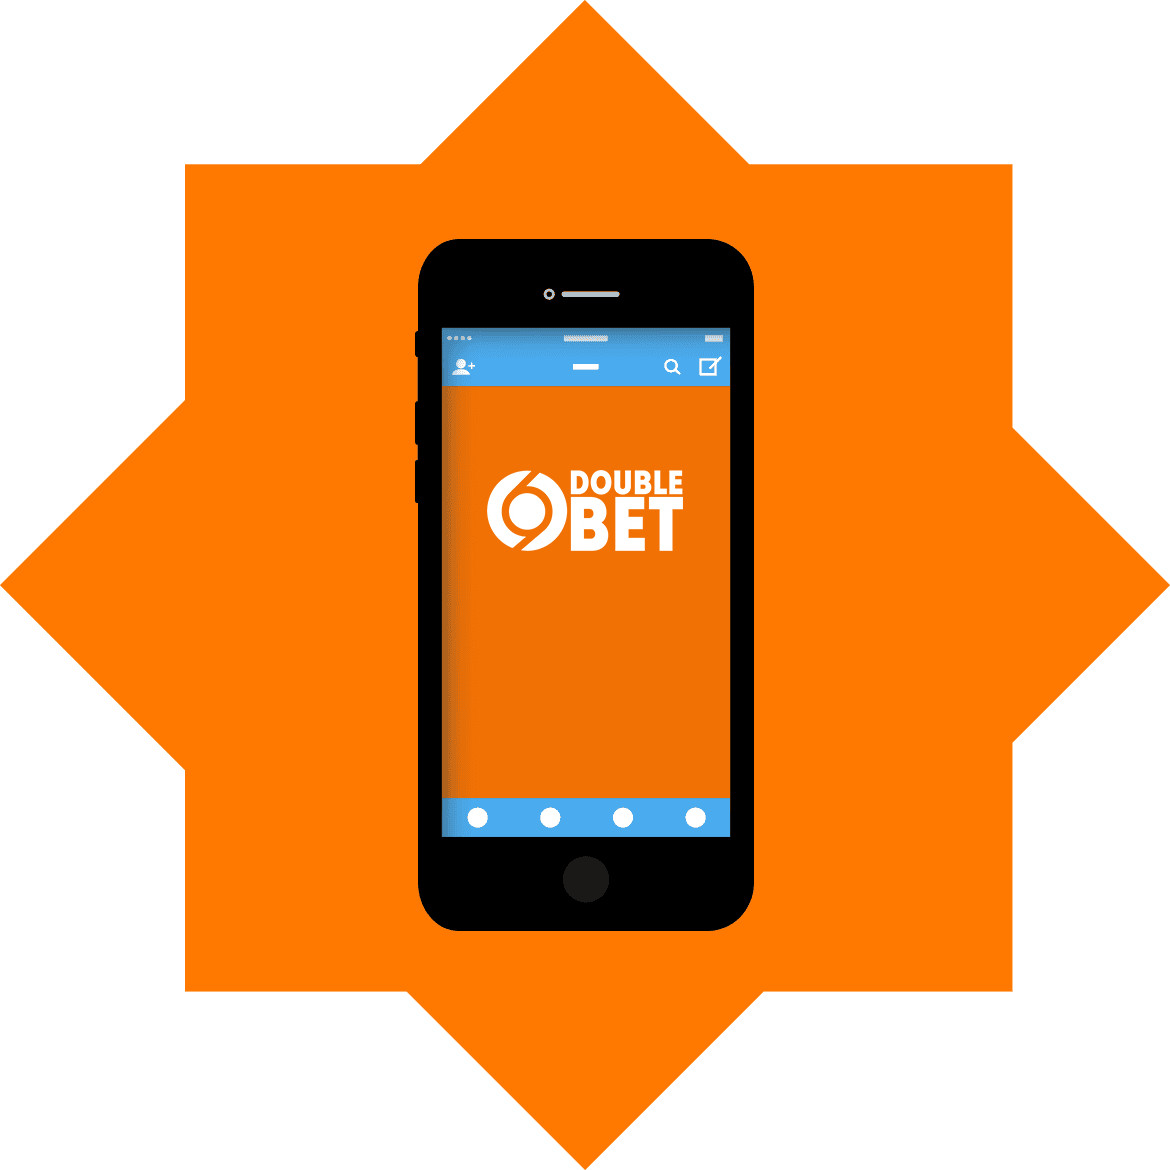 DB-bet - Mobile friendly